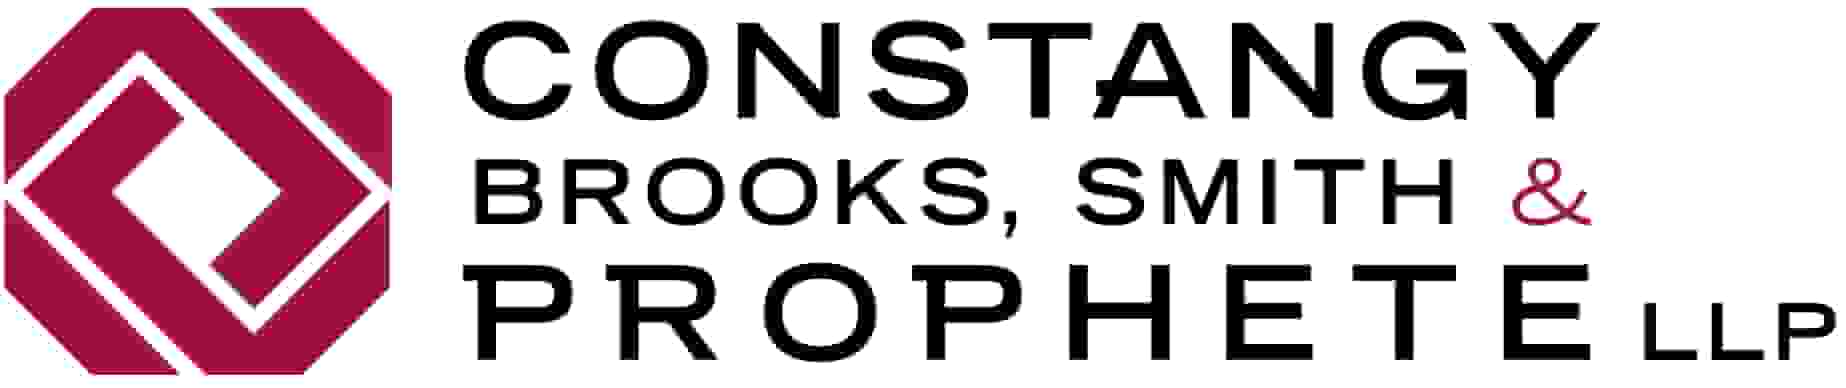 Logo for Constangy, Brooks, Smith & Prophete LLP